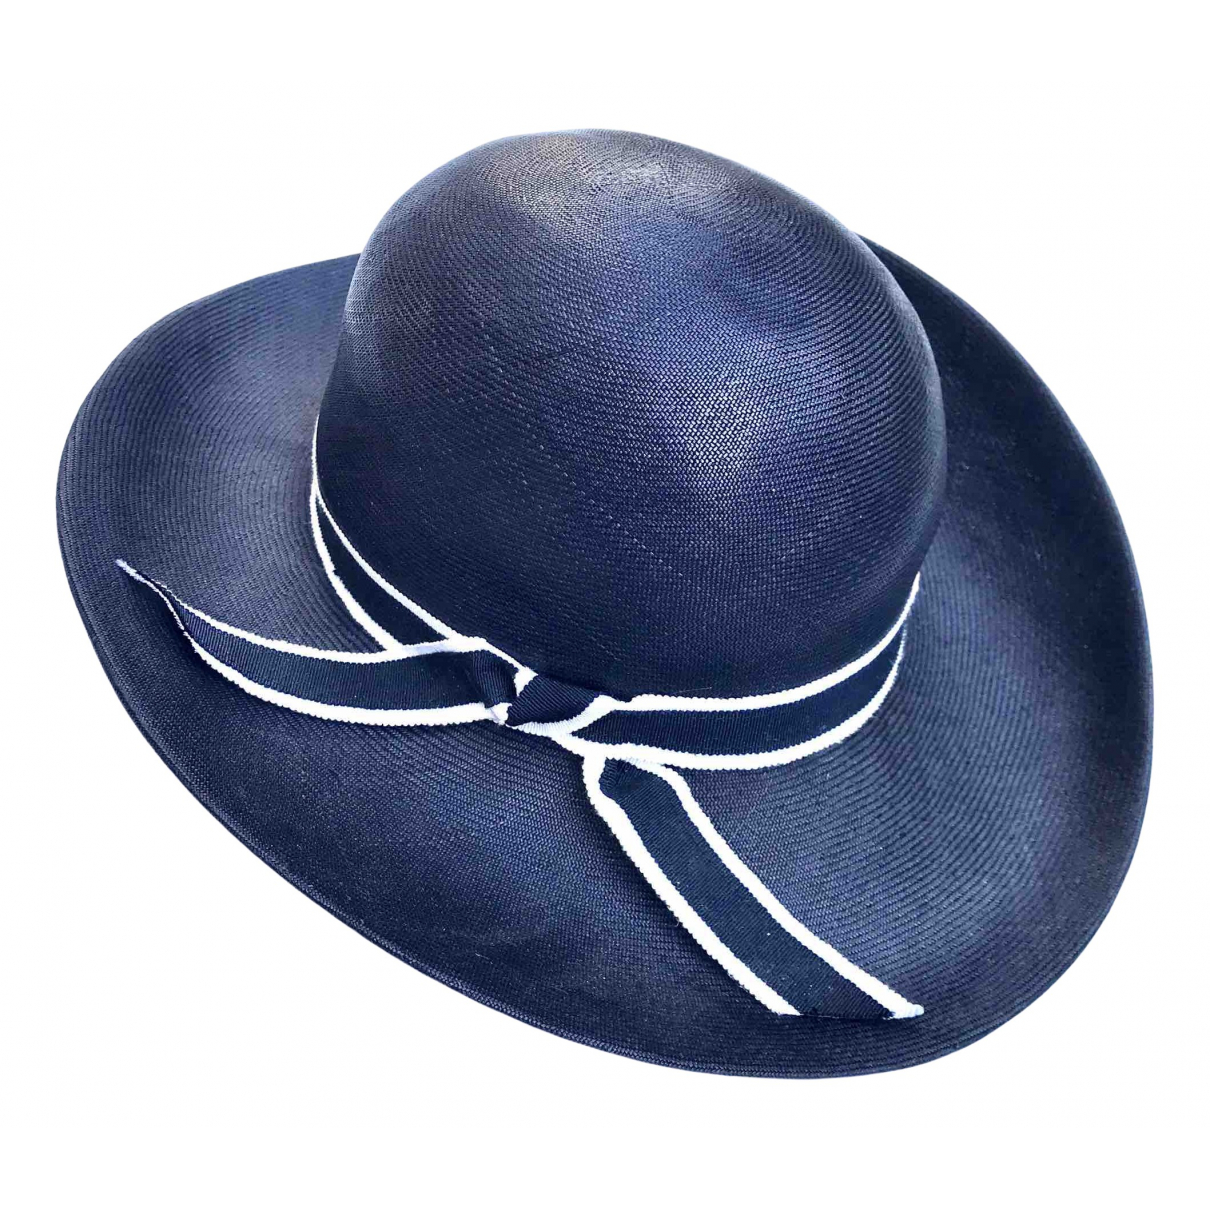 Non Signé / Unsigned \N Navy Wicker hat for Women S International